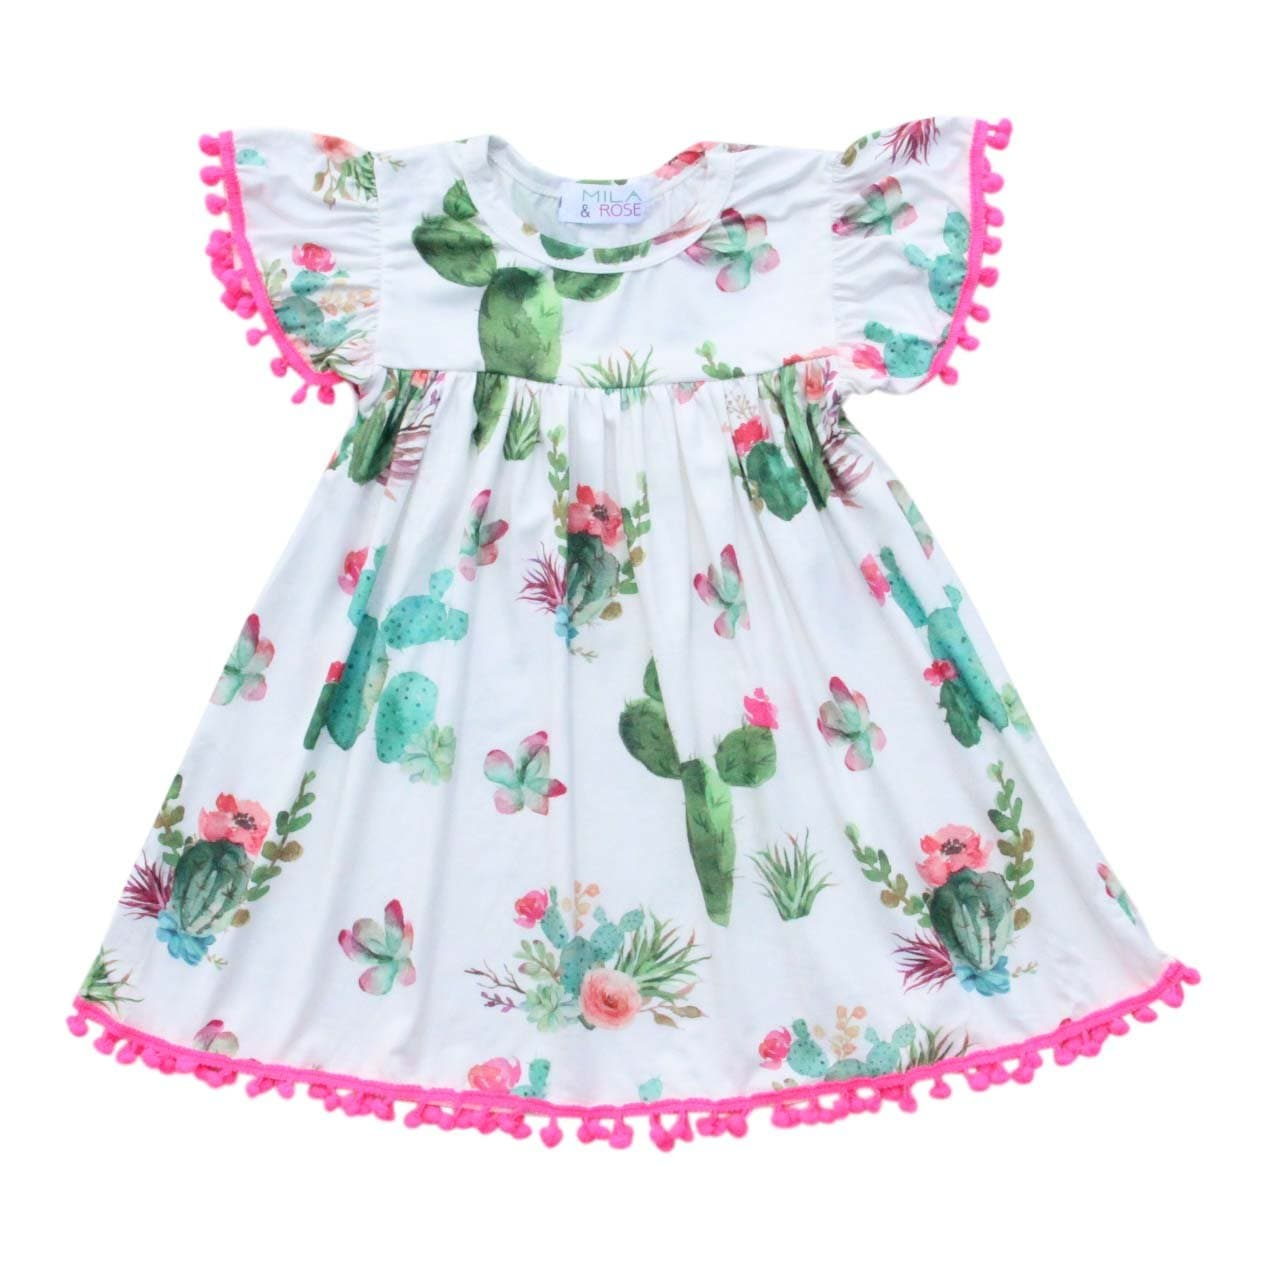 Cute Cactus Pom Pom Dress-Mila & Rose ®